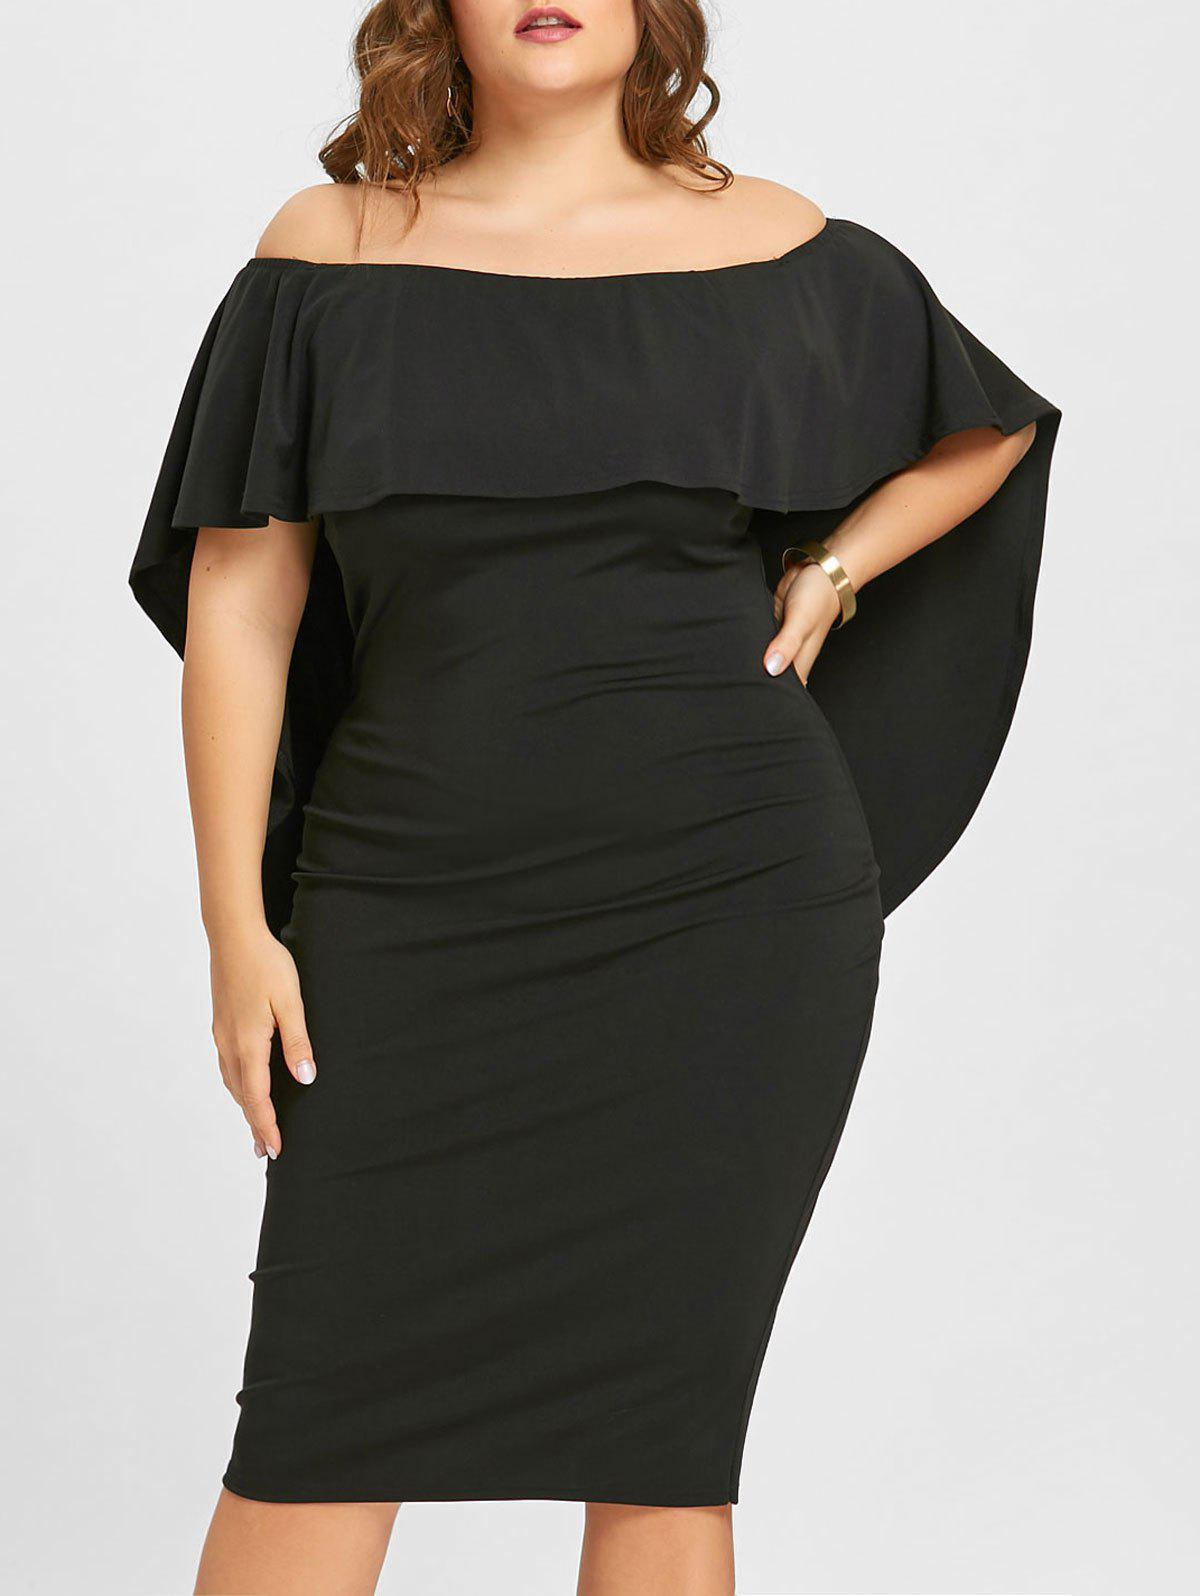 Plus Size Overlay Off The Shoulder Dress graceful off the shoulder overlay tied dress for women